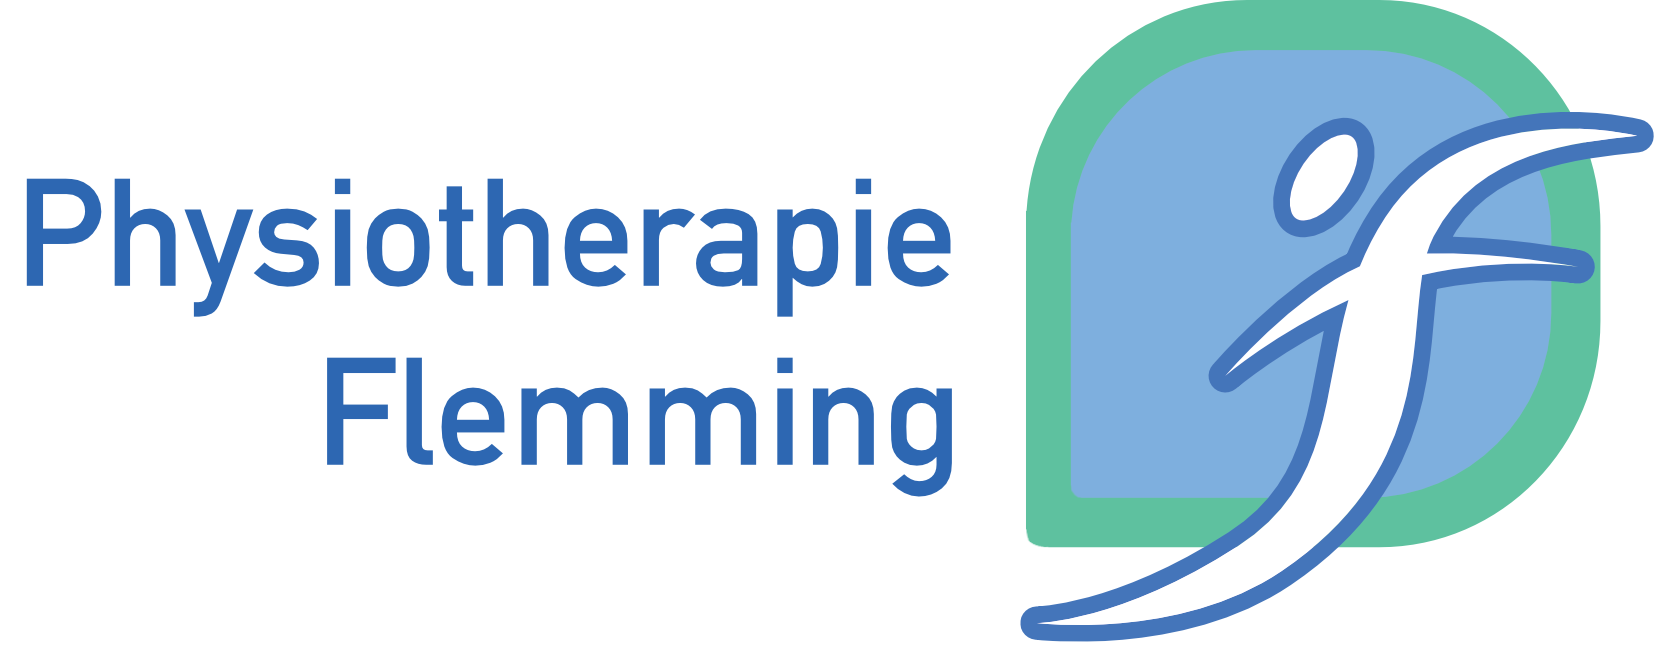 Meine Physiotherapie Flemming. Physiotherapie und Wellness in Dresden